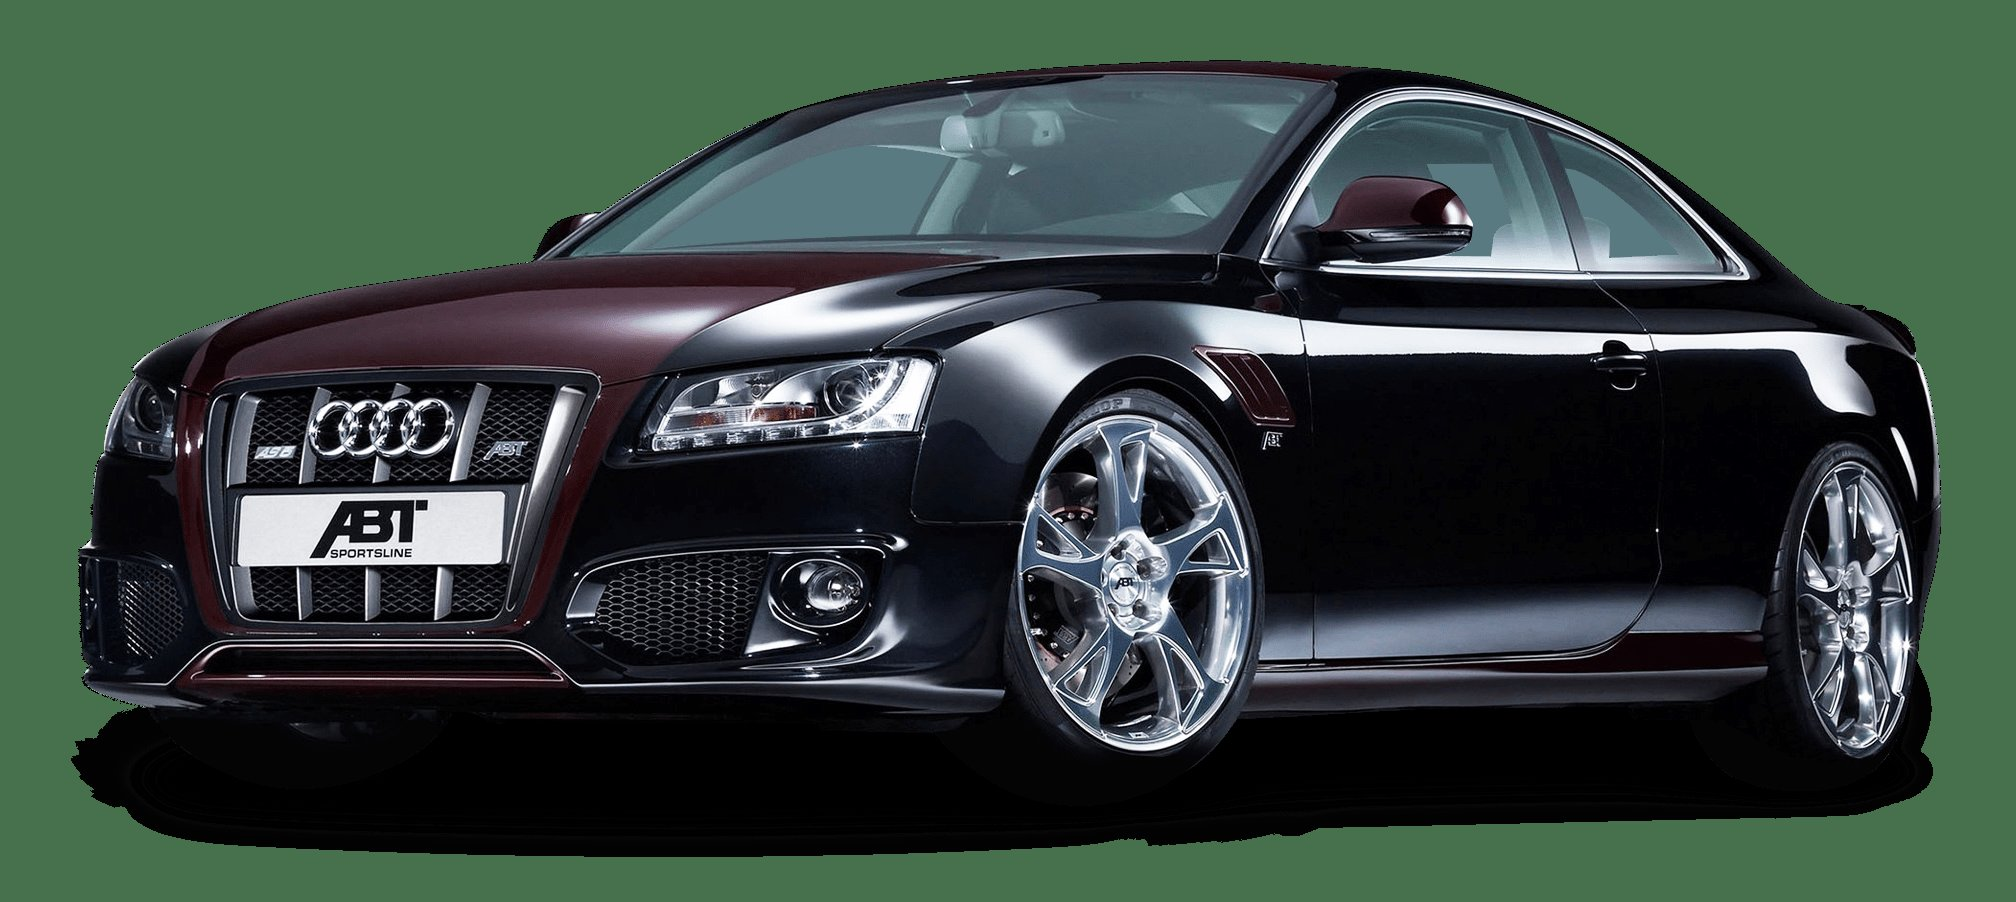 Latest Black Audi Car Png Image Purepng Free Transparent Cc0 Free Download